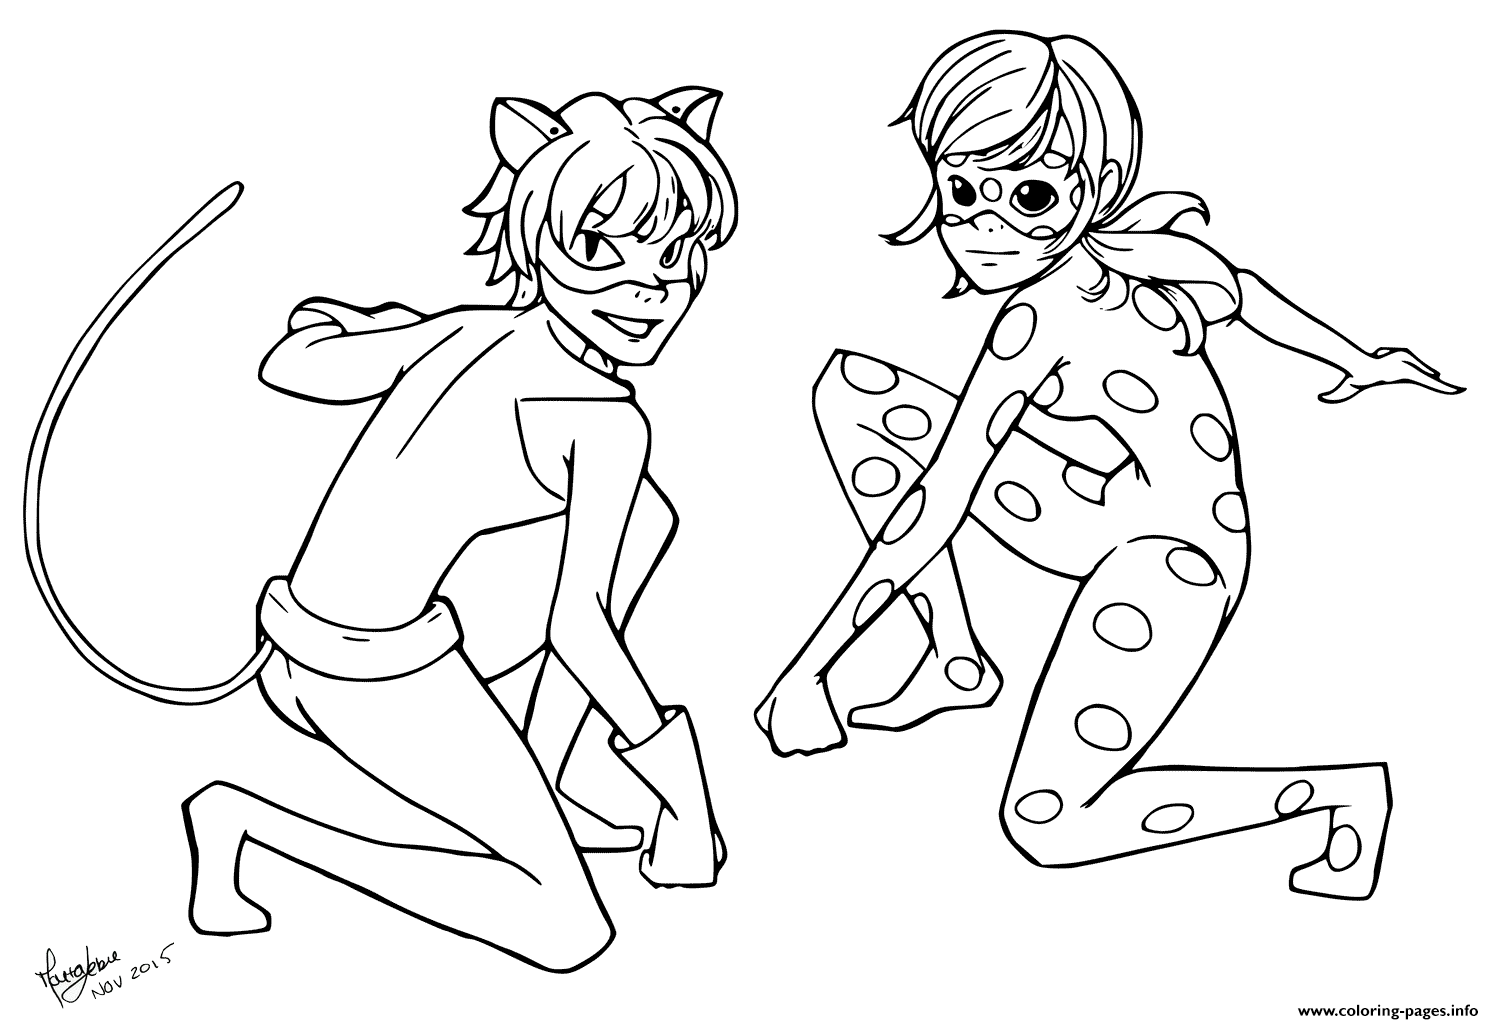 Miraculous Ladybug Coloring Pages at GetDrawings   Free ...